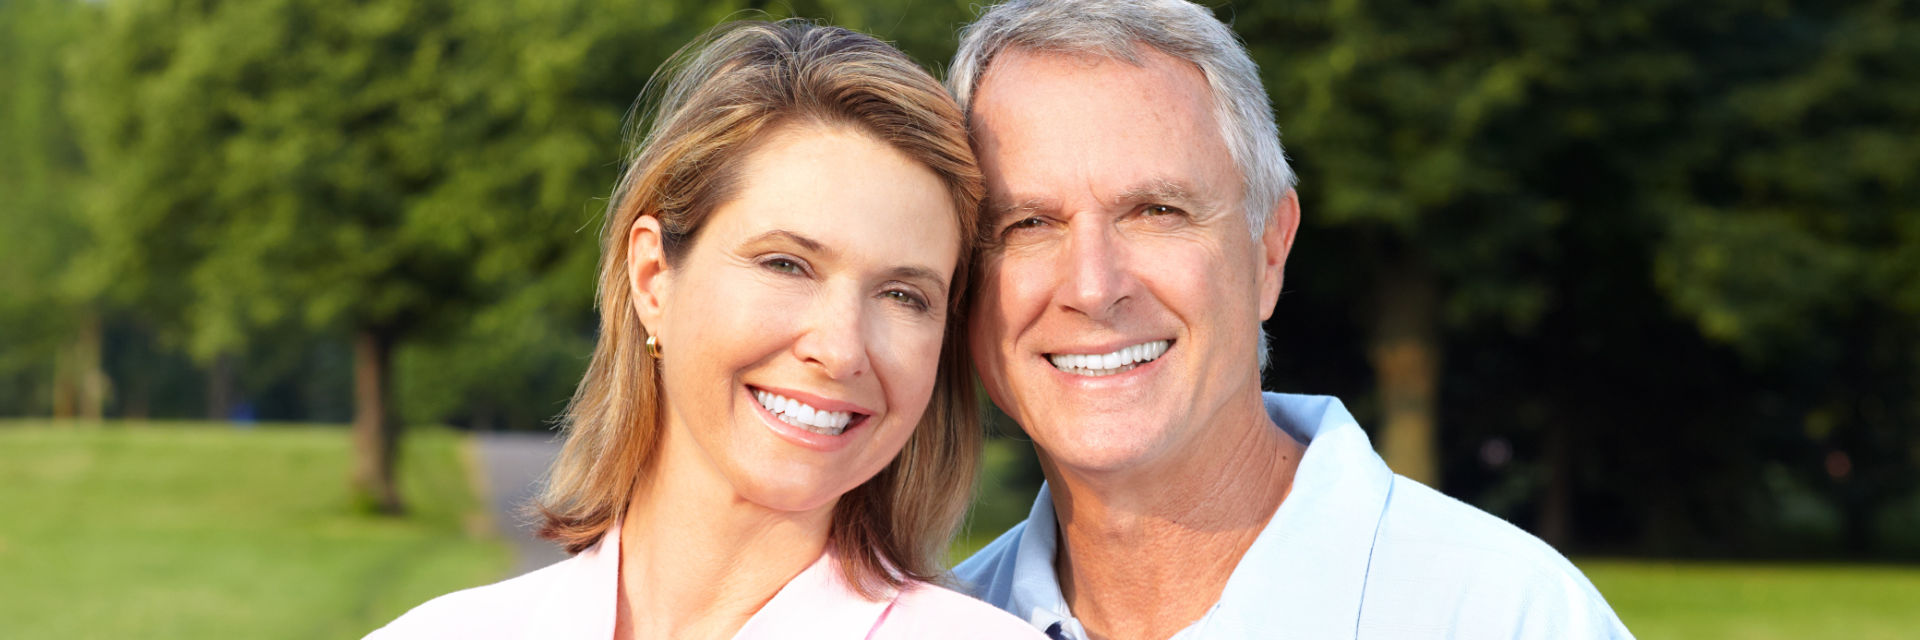 Broadly smiling mature couple showing their perfect teeth after implant restoration.